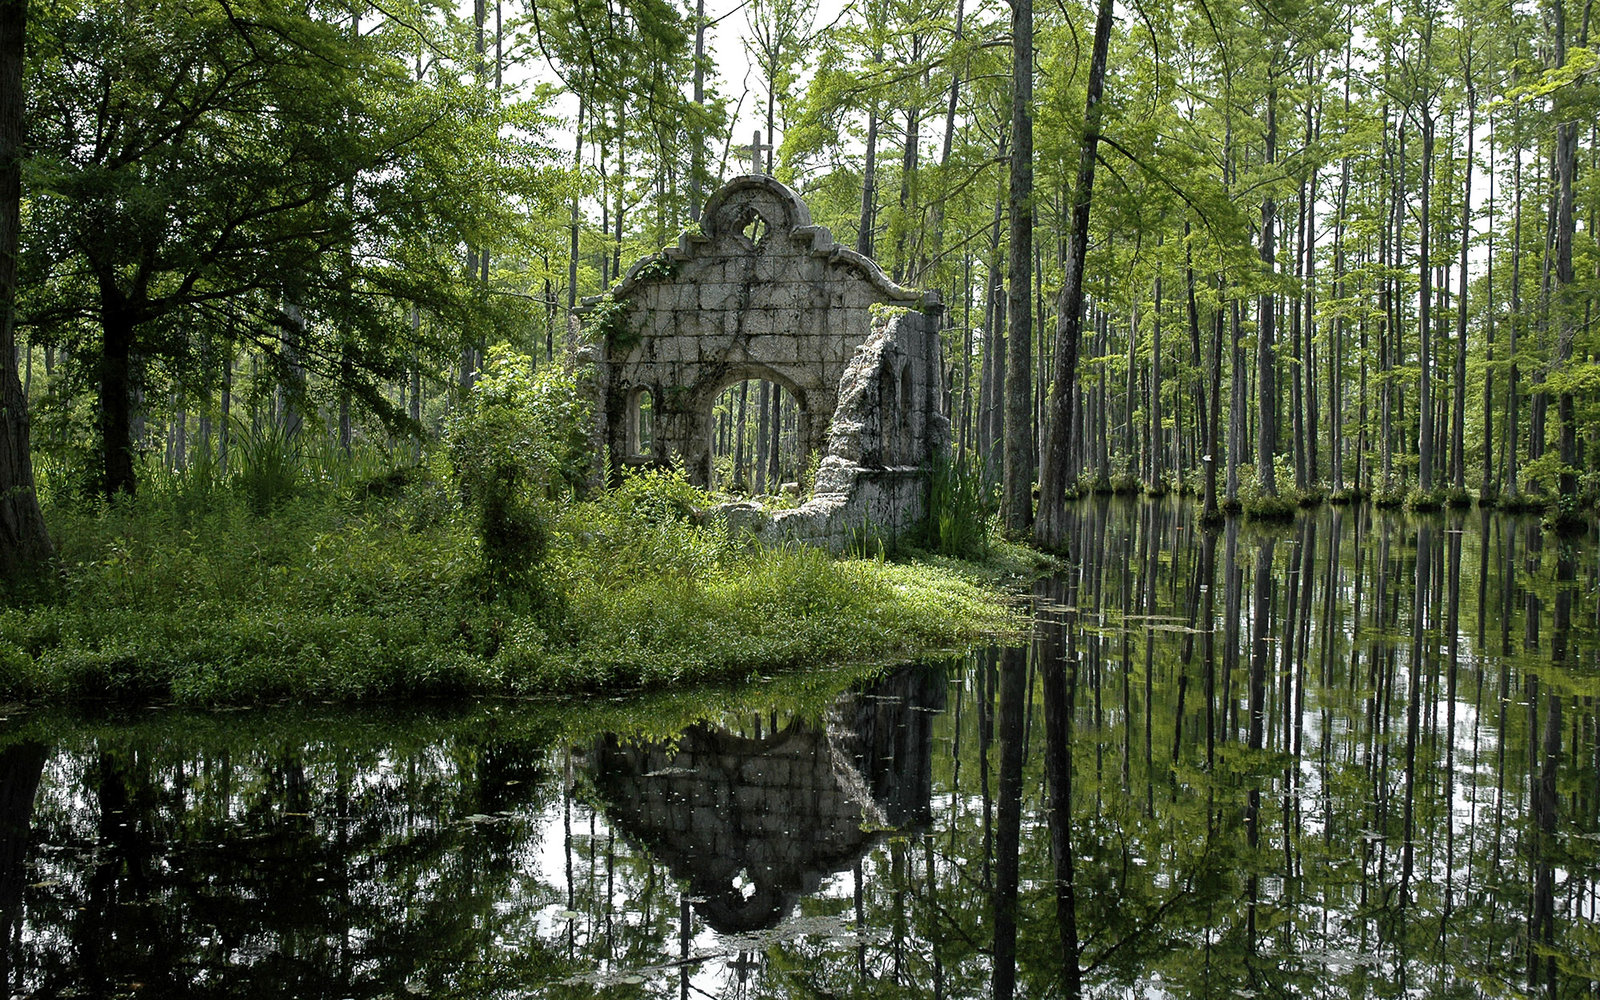 The Patriot's Old Spanish Mission in Cypress Gardens, South Carolina